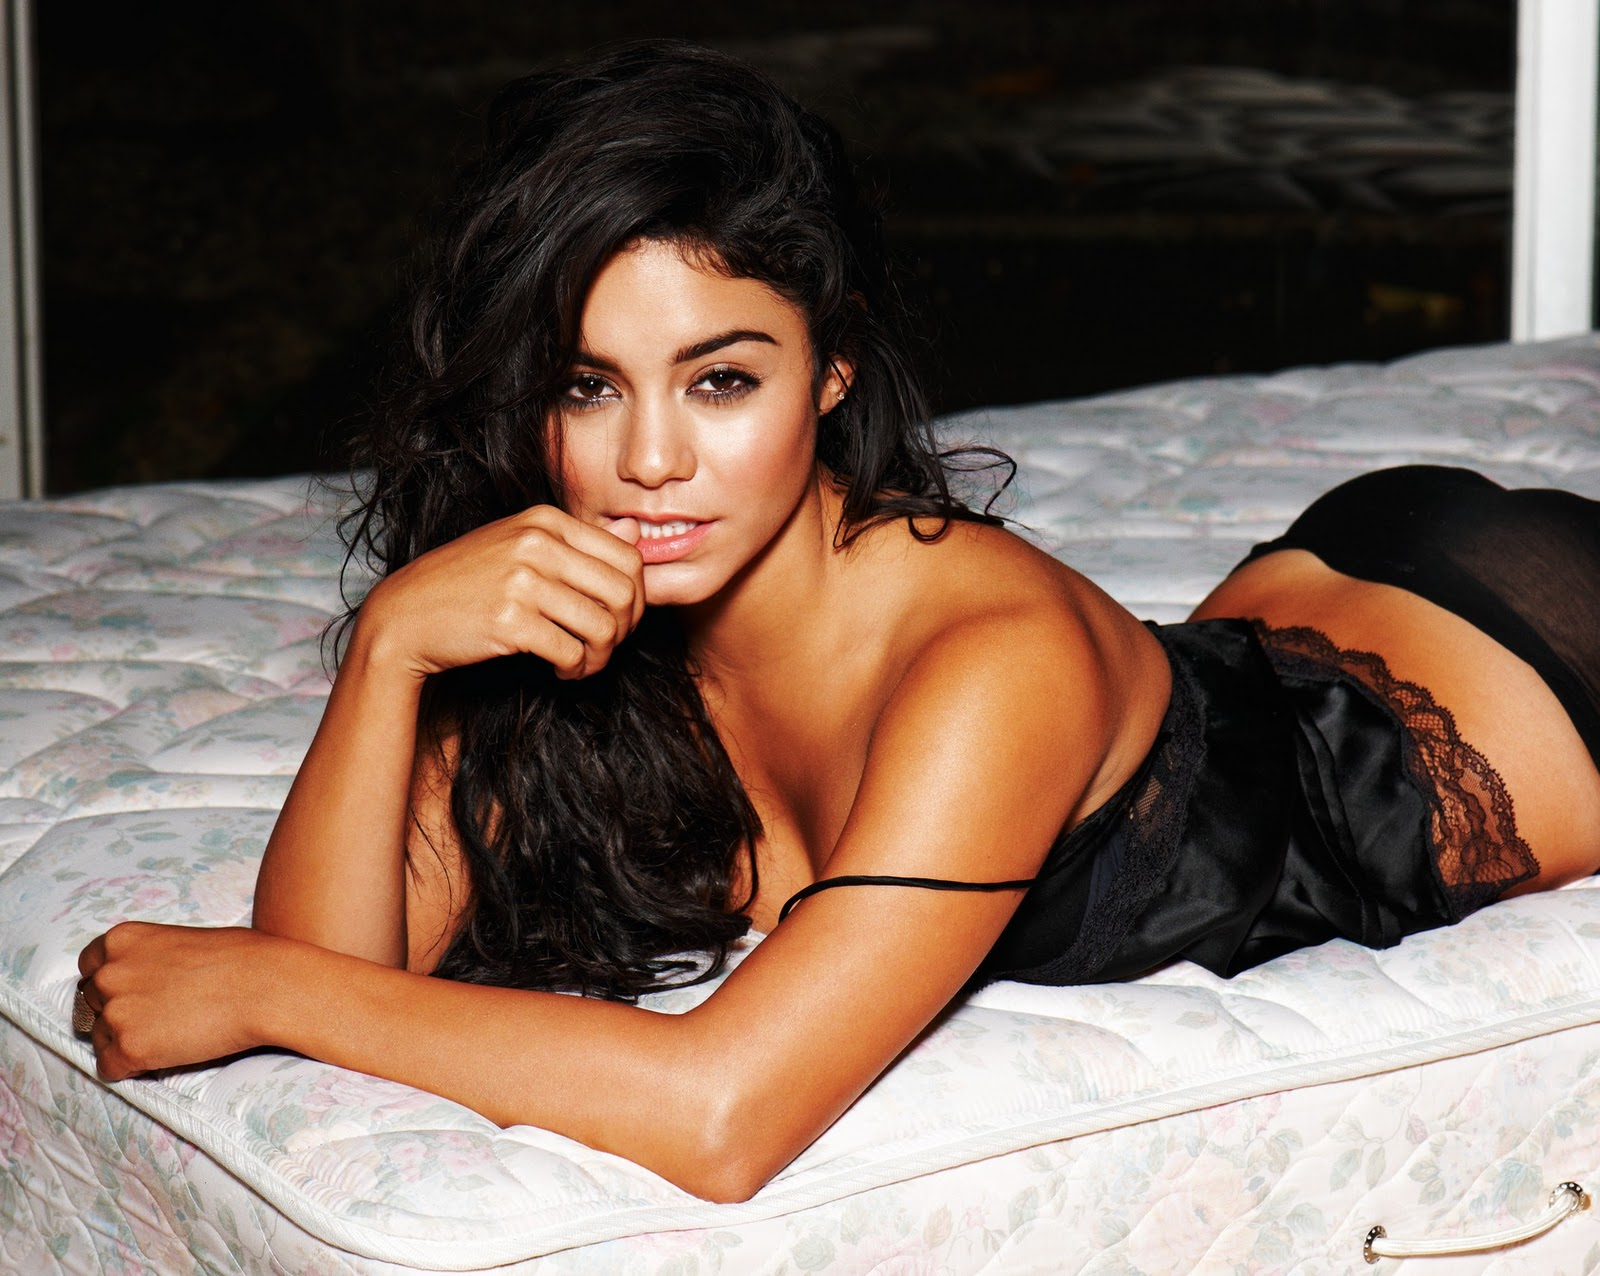 vanessa hudgens hot hd - photo #16